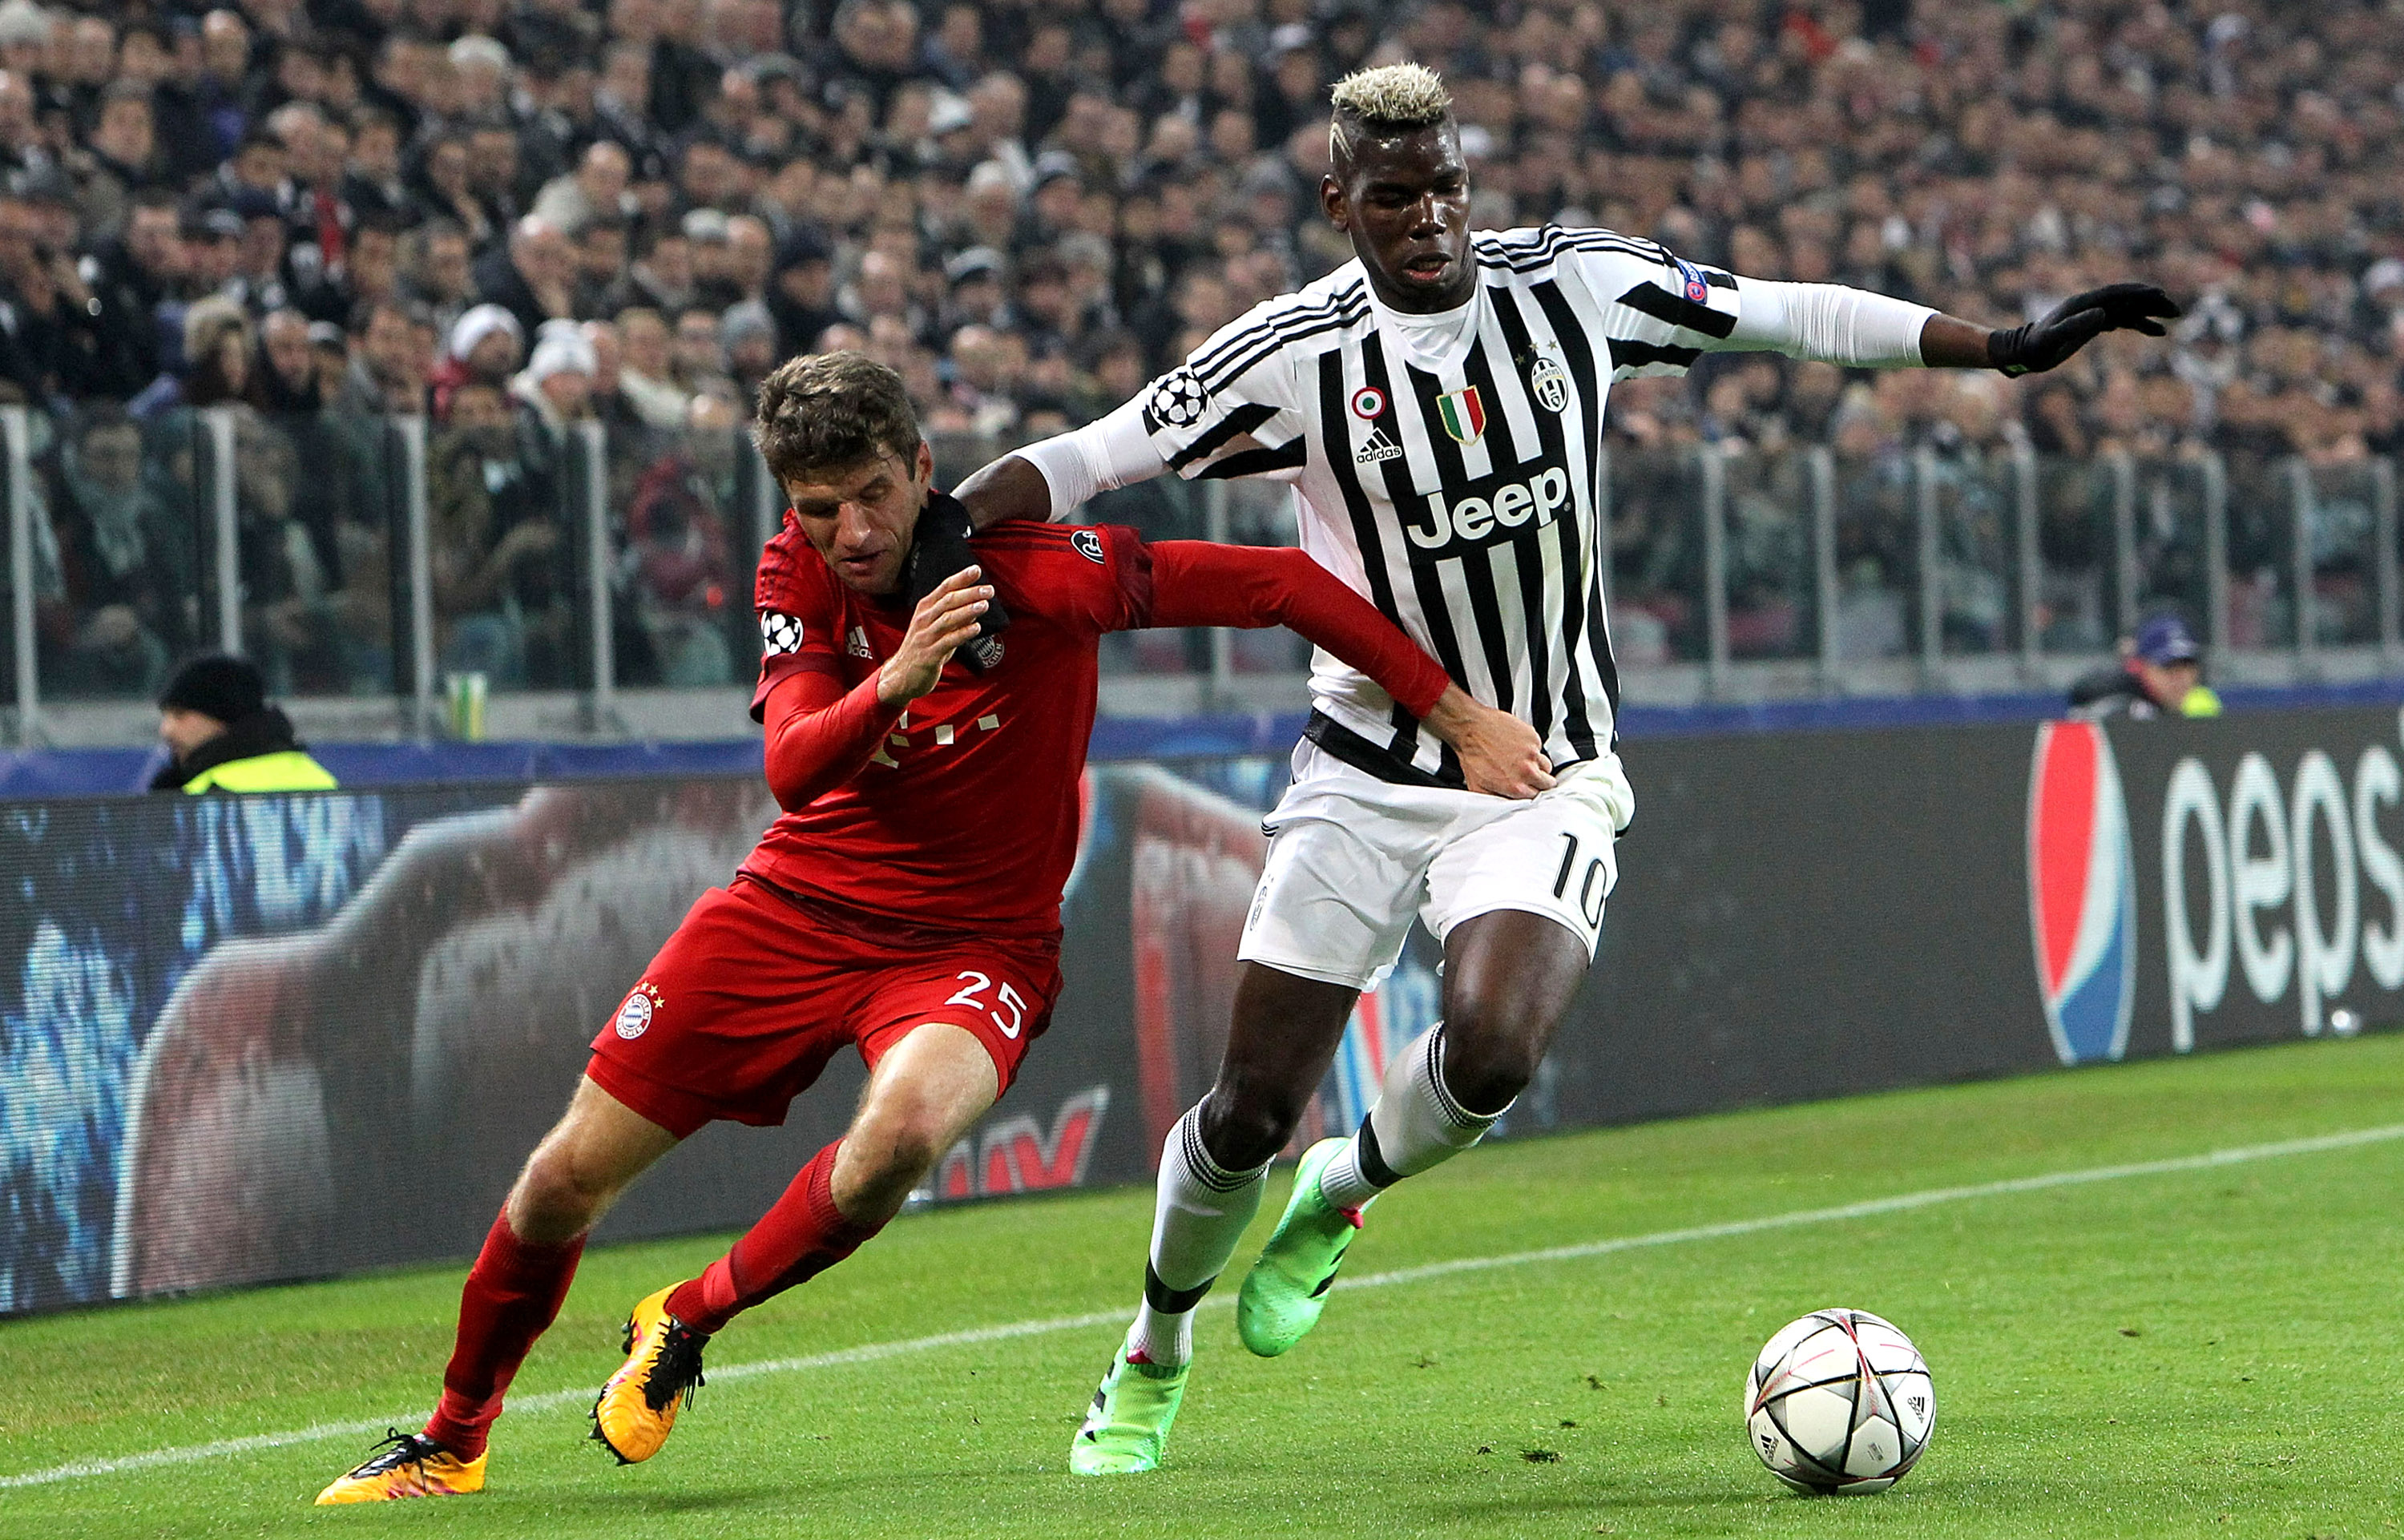 Juventus Bayern score, Juventus Bayern result, Juventus Bayern goals, Juventus Bayern highlights, Juventus Bayern finish, Juventus Bayern results, Juventus Bayern, second leg, return leg, date, time, tv info, when, channel. video,